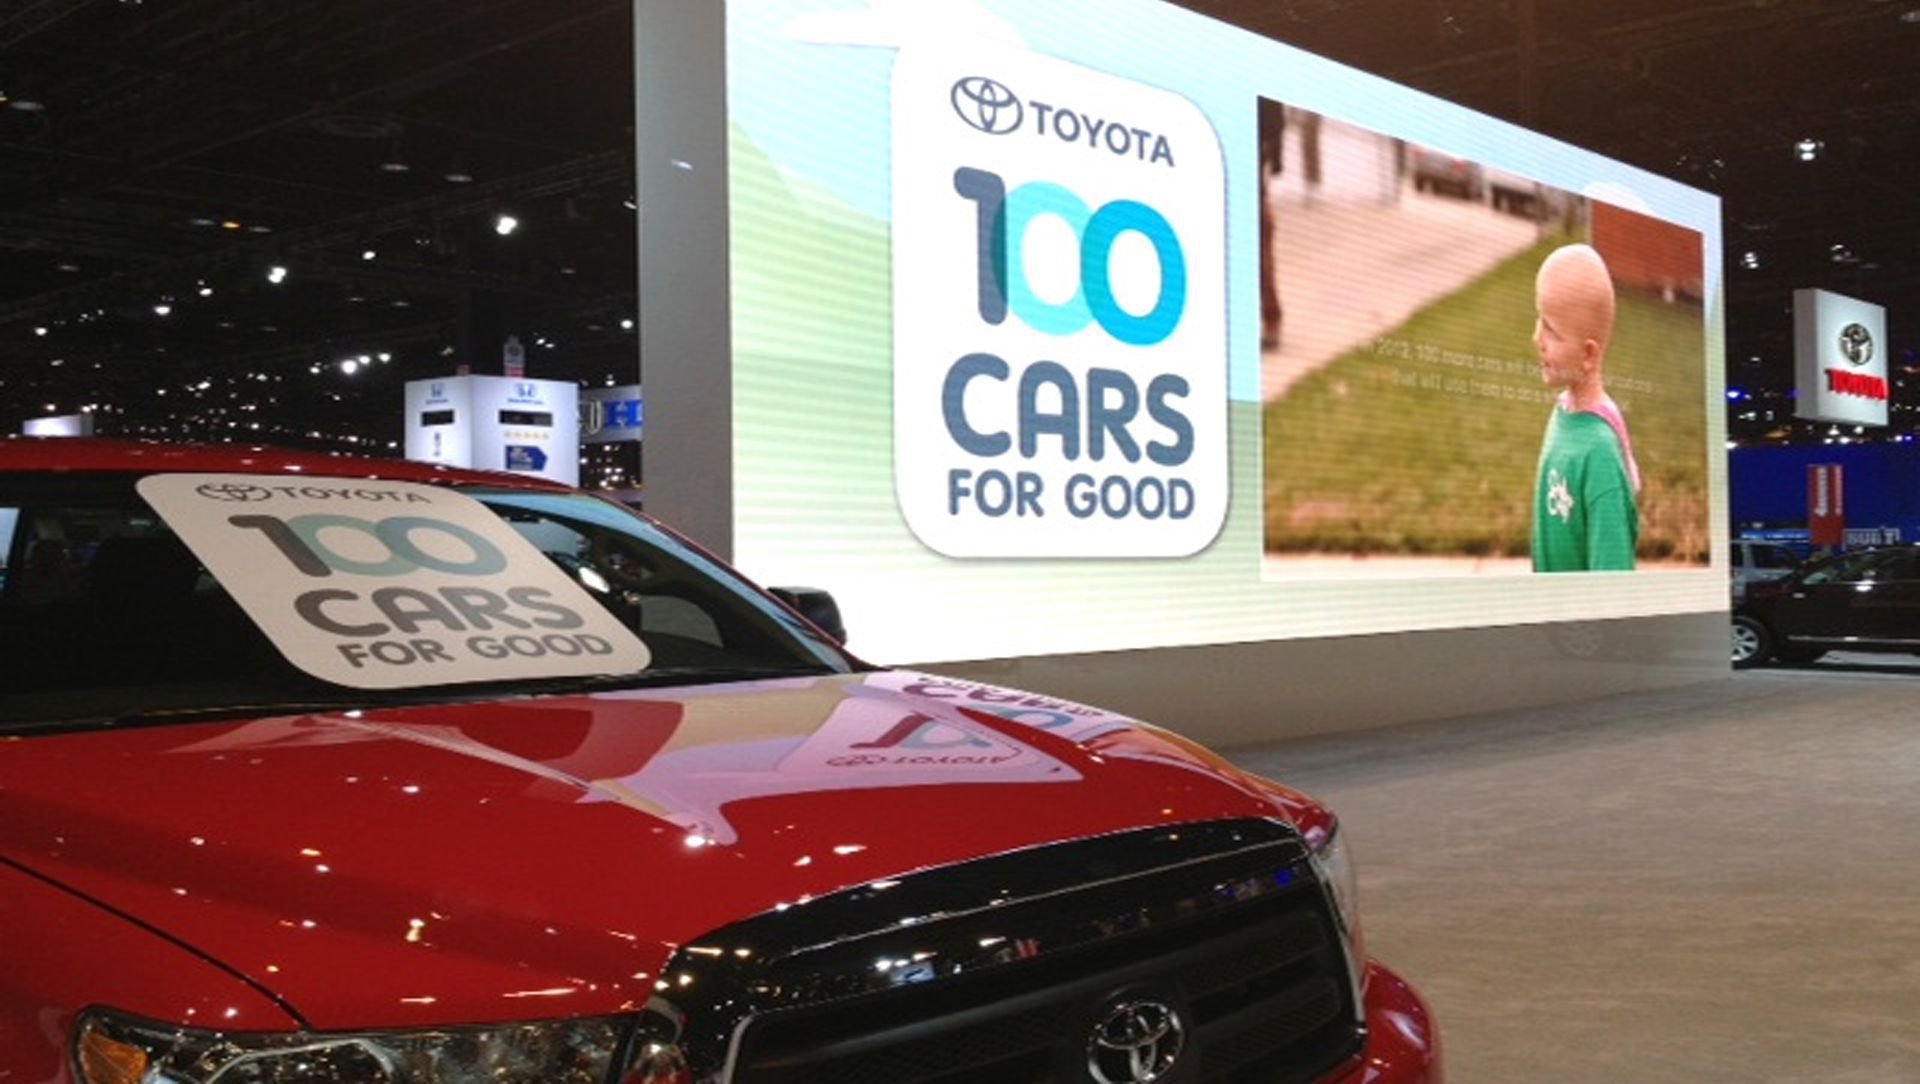 Voting For Toyotau0027s 100 Cars For Good Opens This Morning